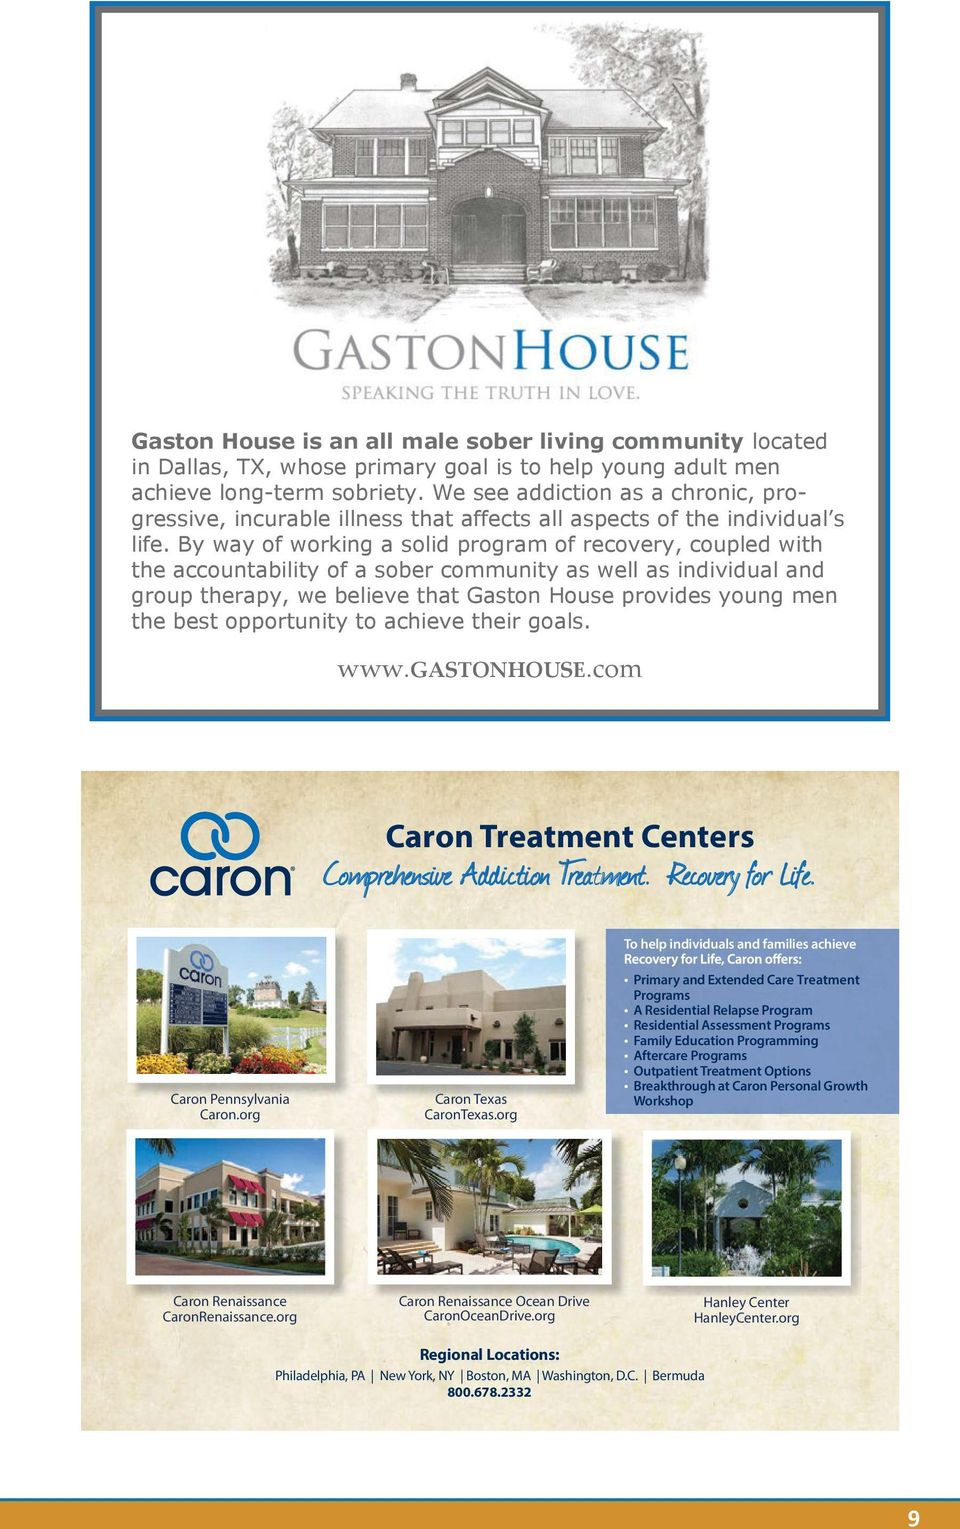 By way of working a solid program of recovery, coupled with the accountability of a sober community as well as individual and group therapy, we believe that Gaston House provides young men the best